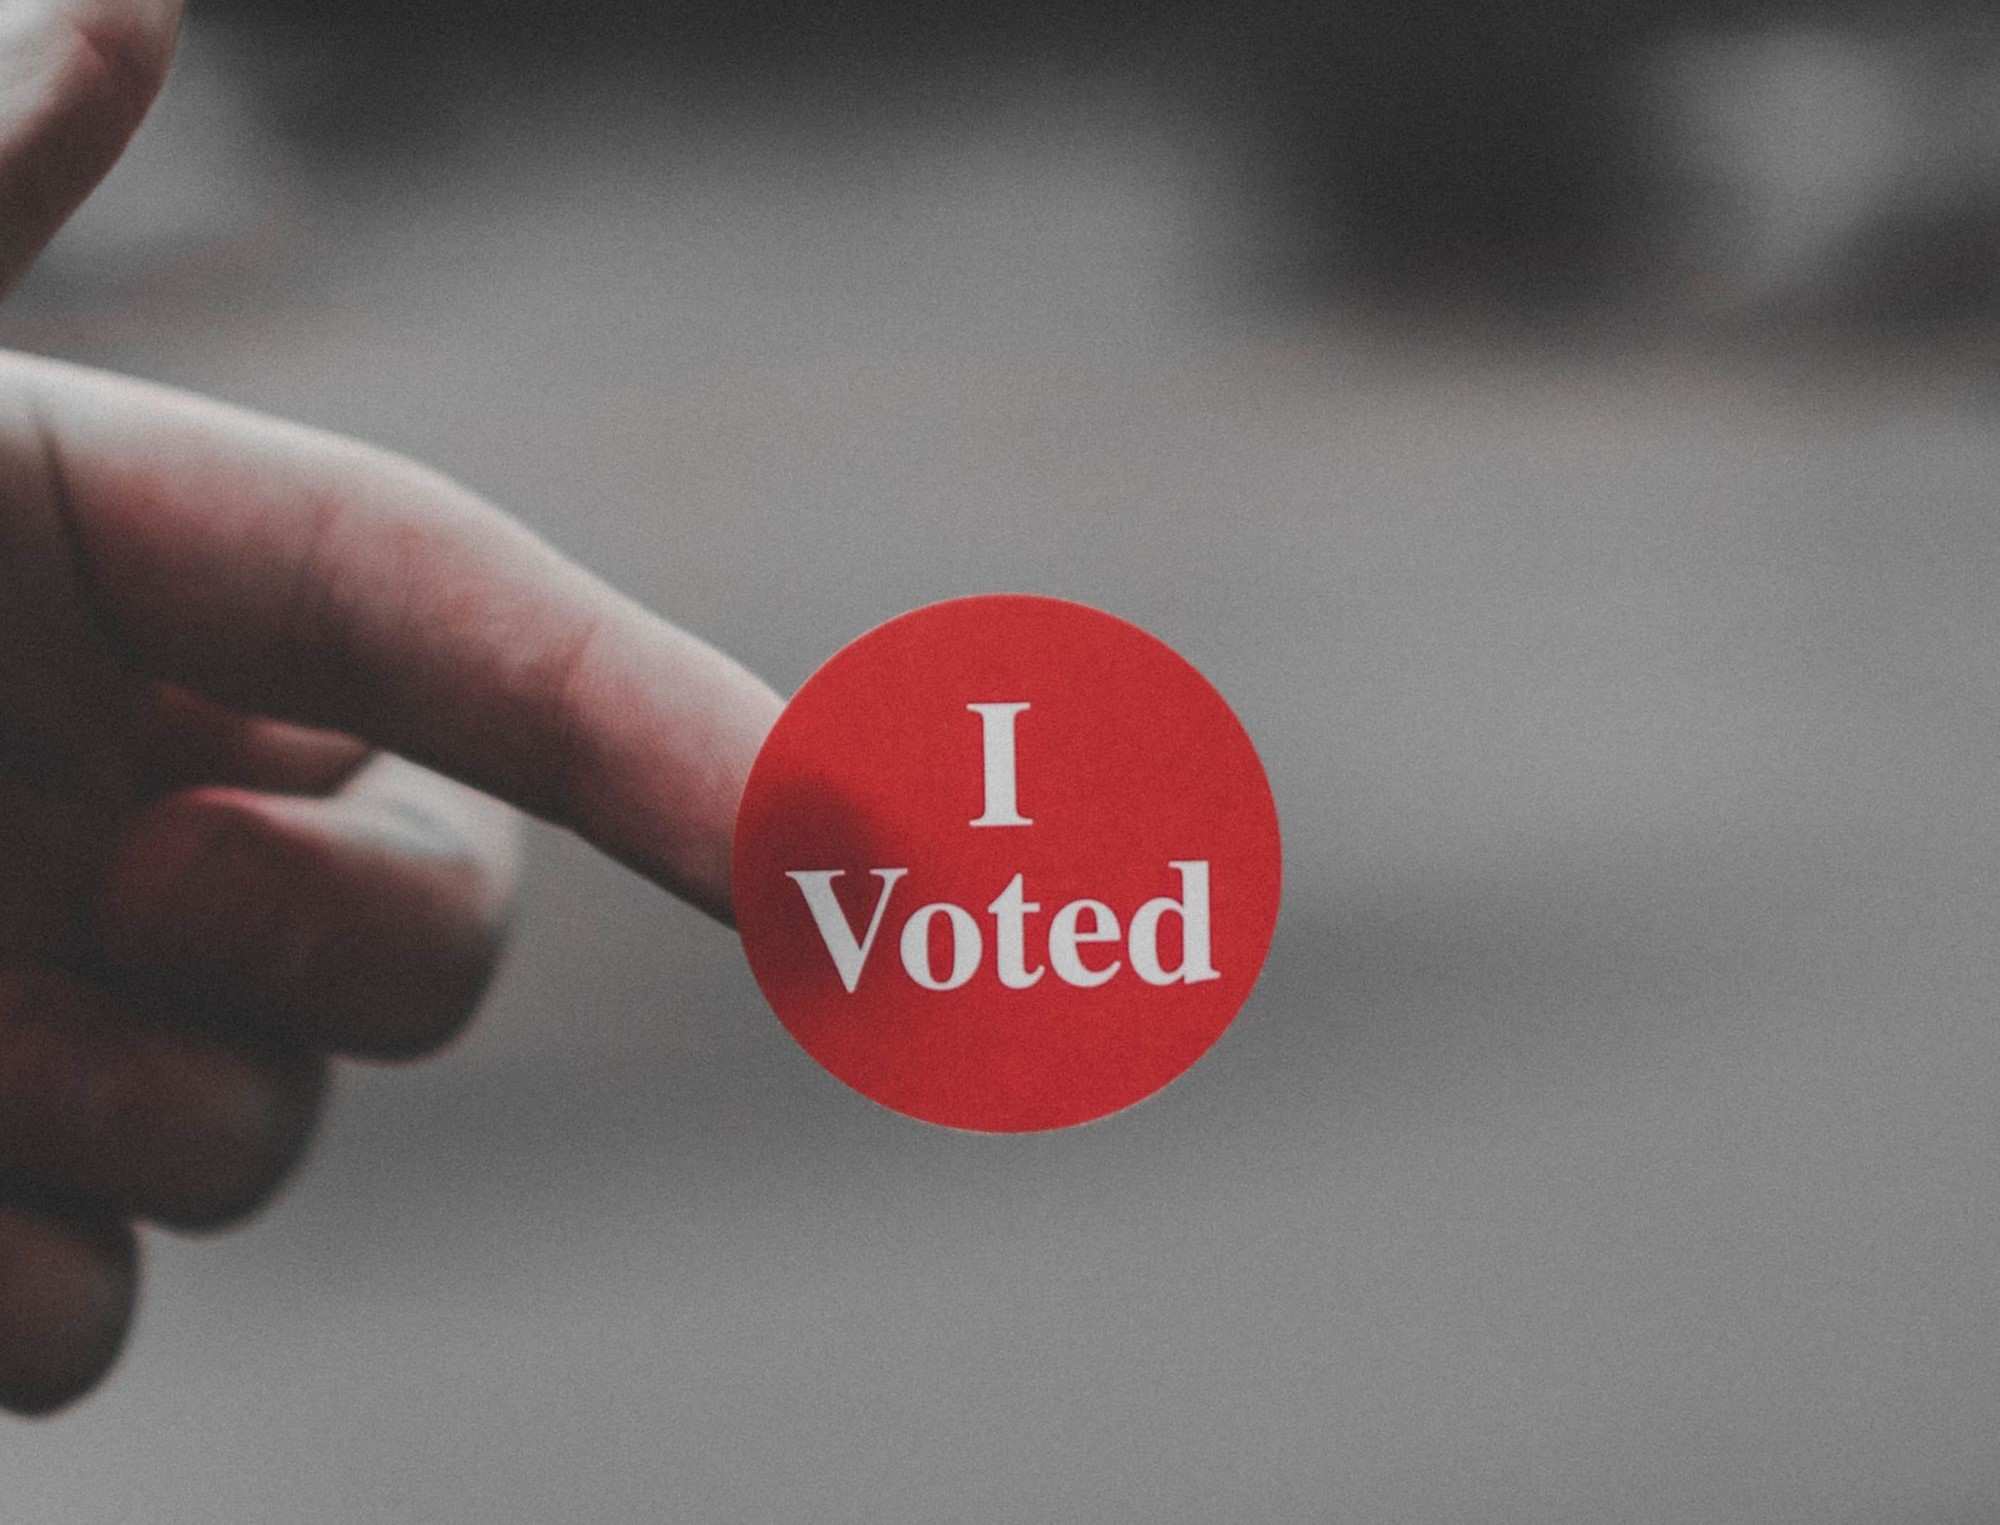 Voting Pro-Life Does Not Make Christians Insensitive